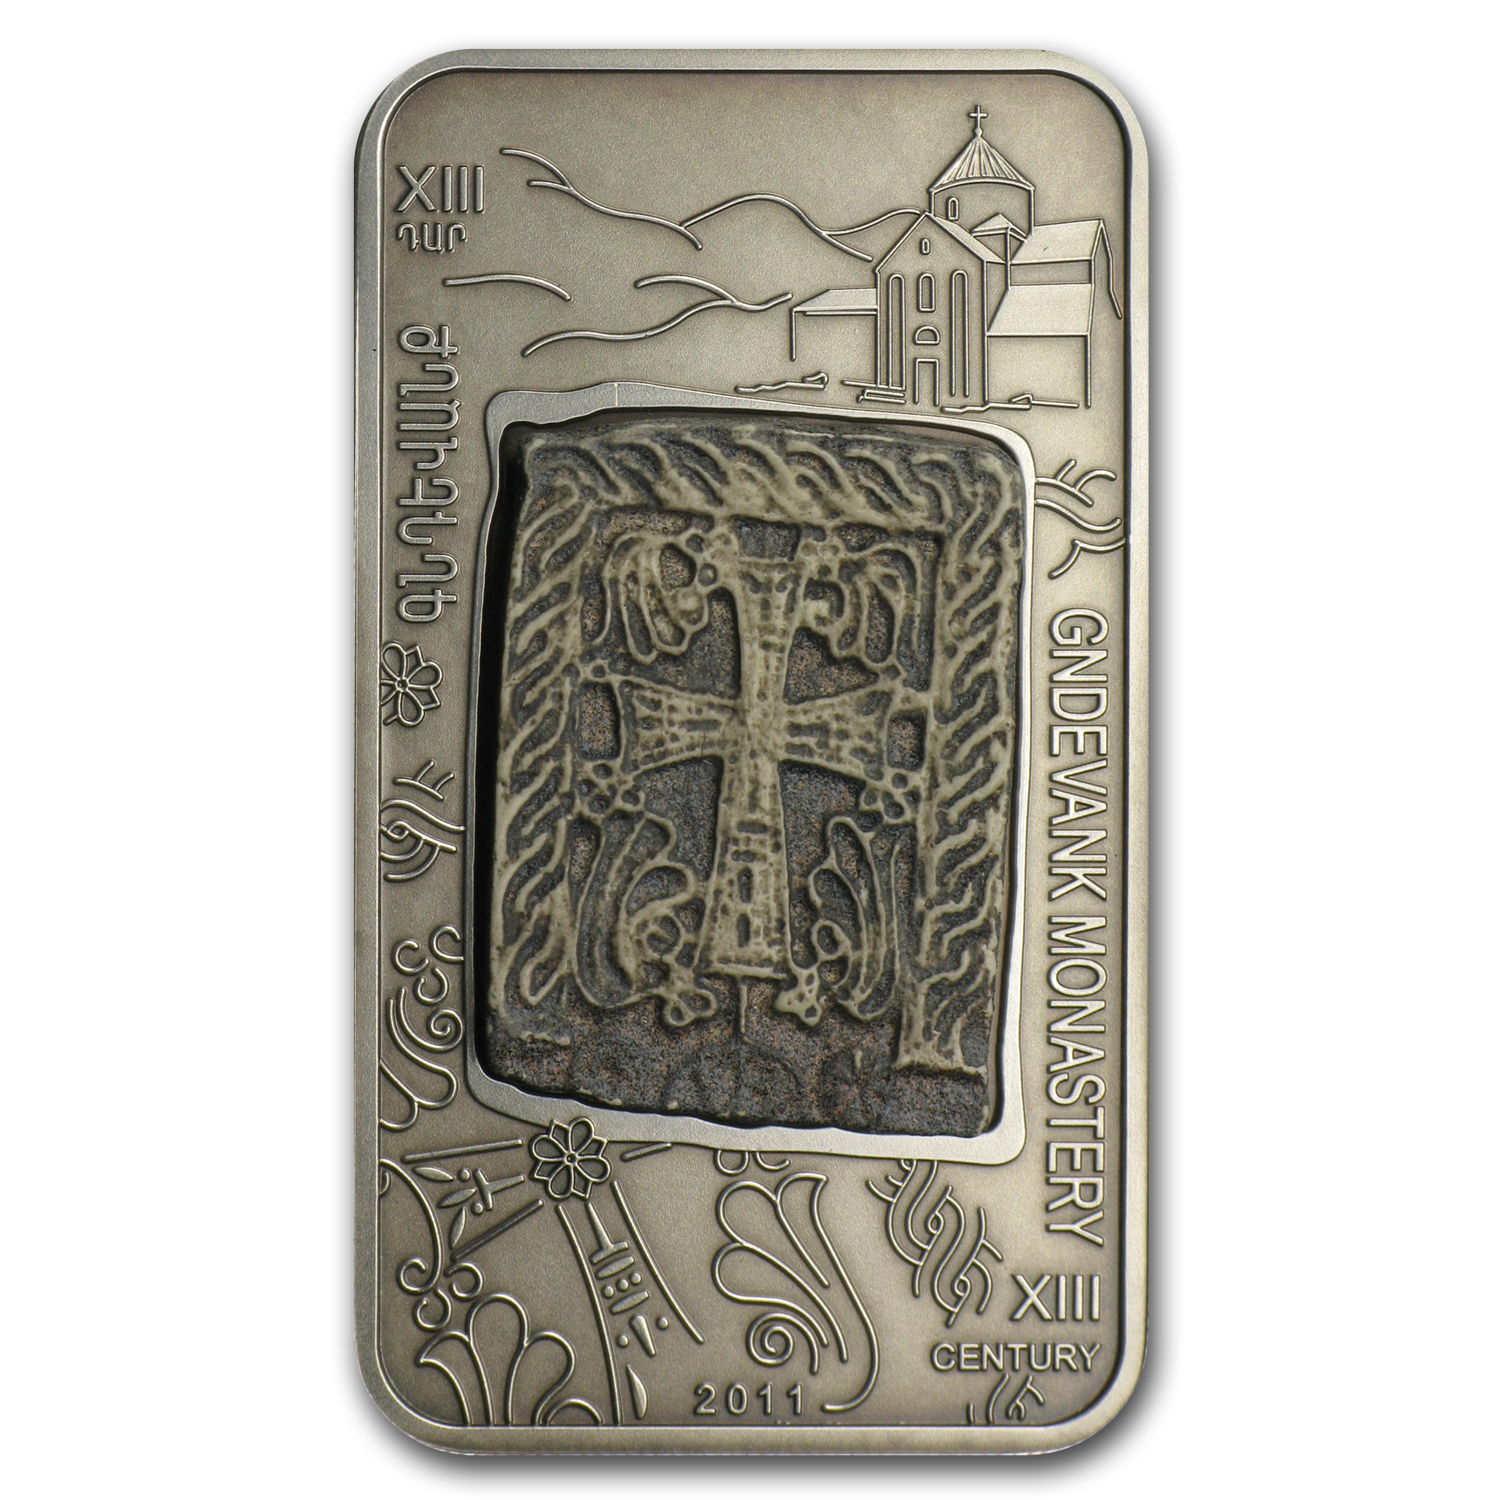 2011 Armenia 1000 Dram Cross-Stones of Armenia The Gndevank